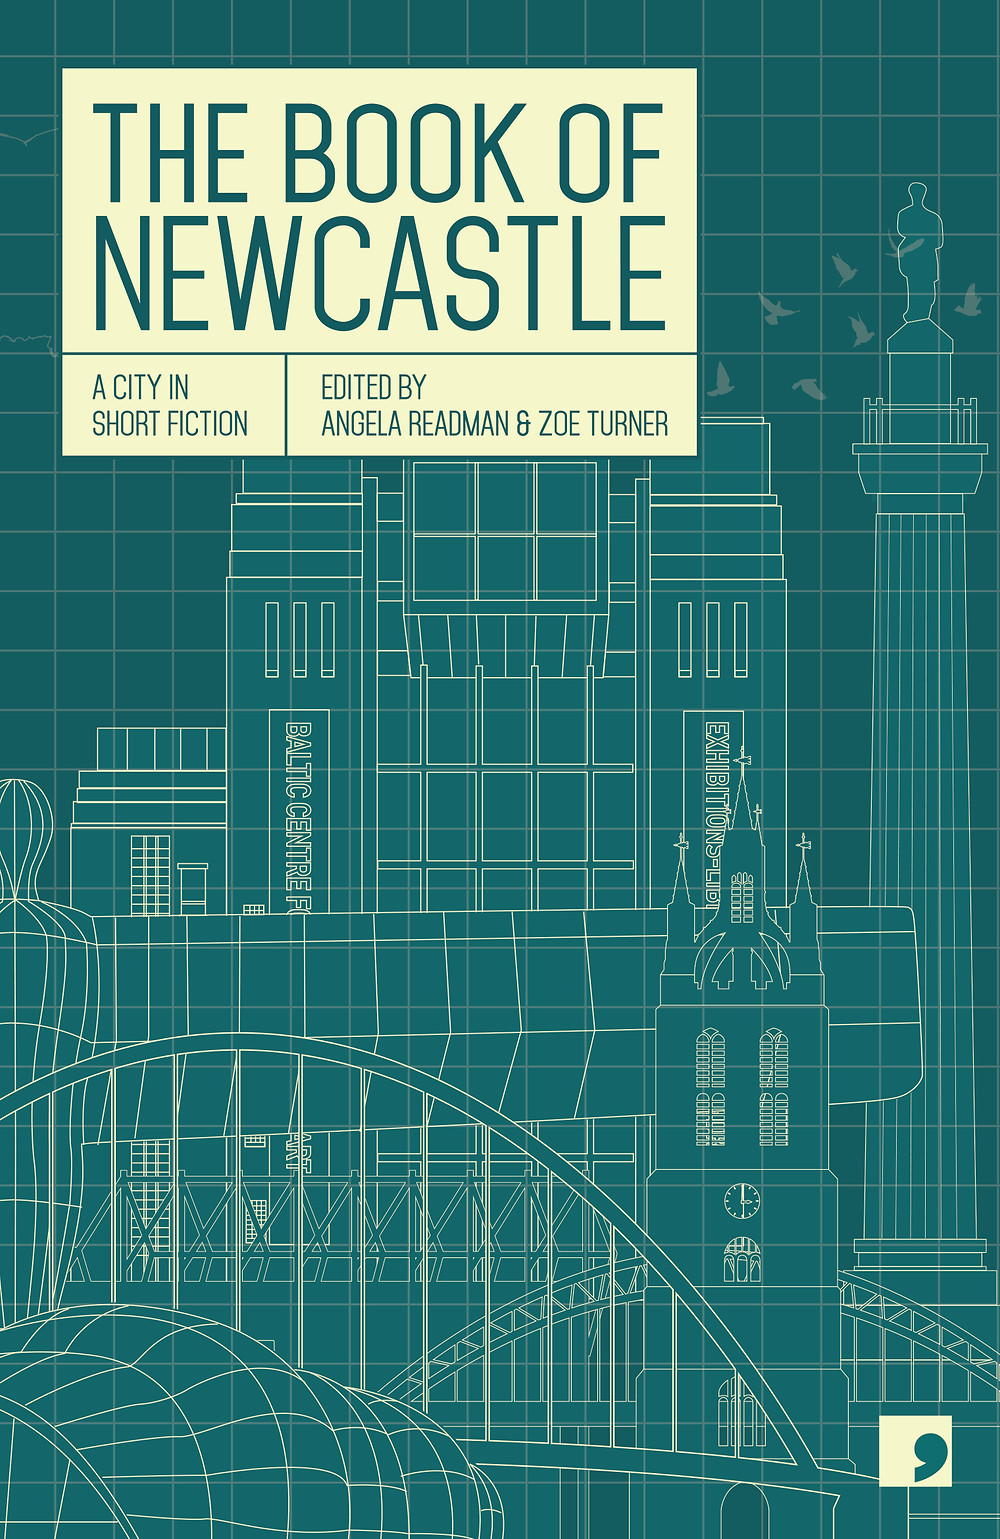 newcastle, newcastle upon tyne, short story about newcastle